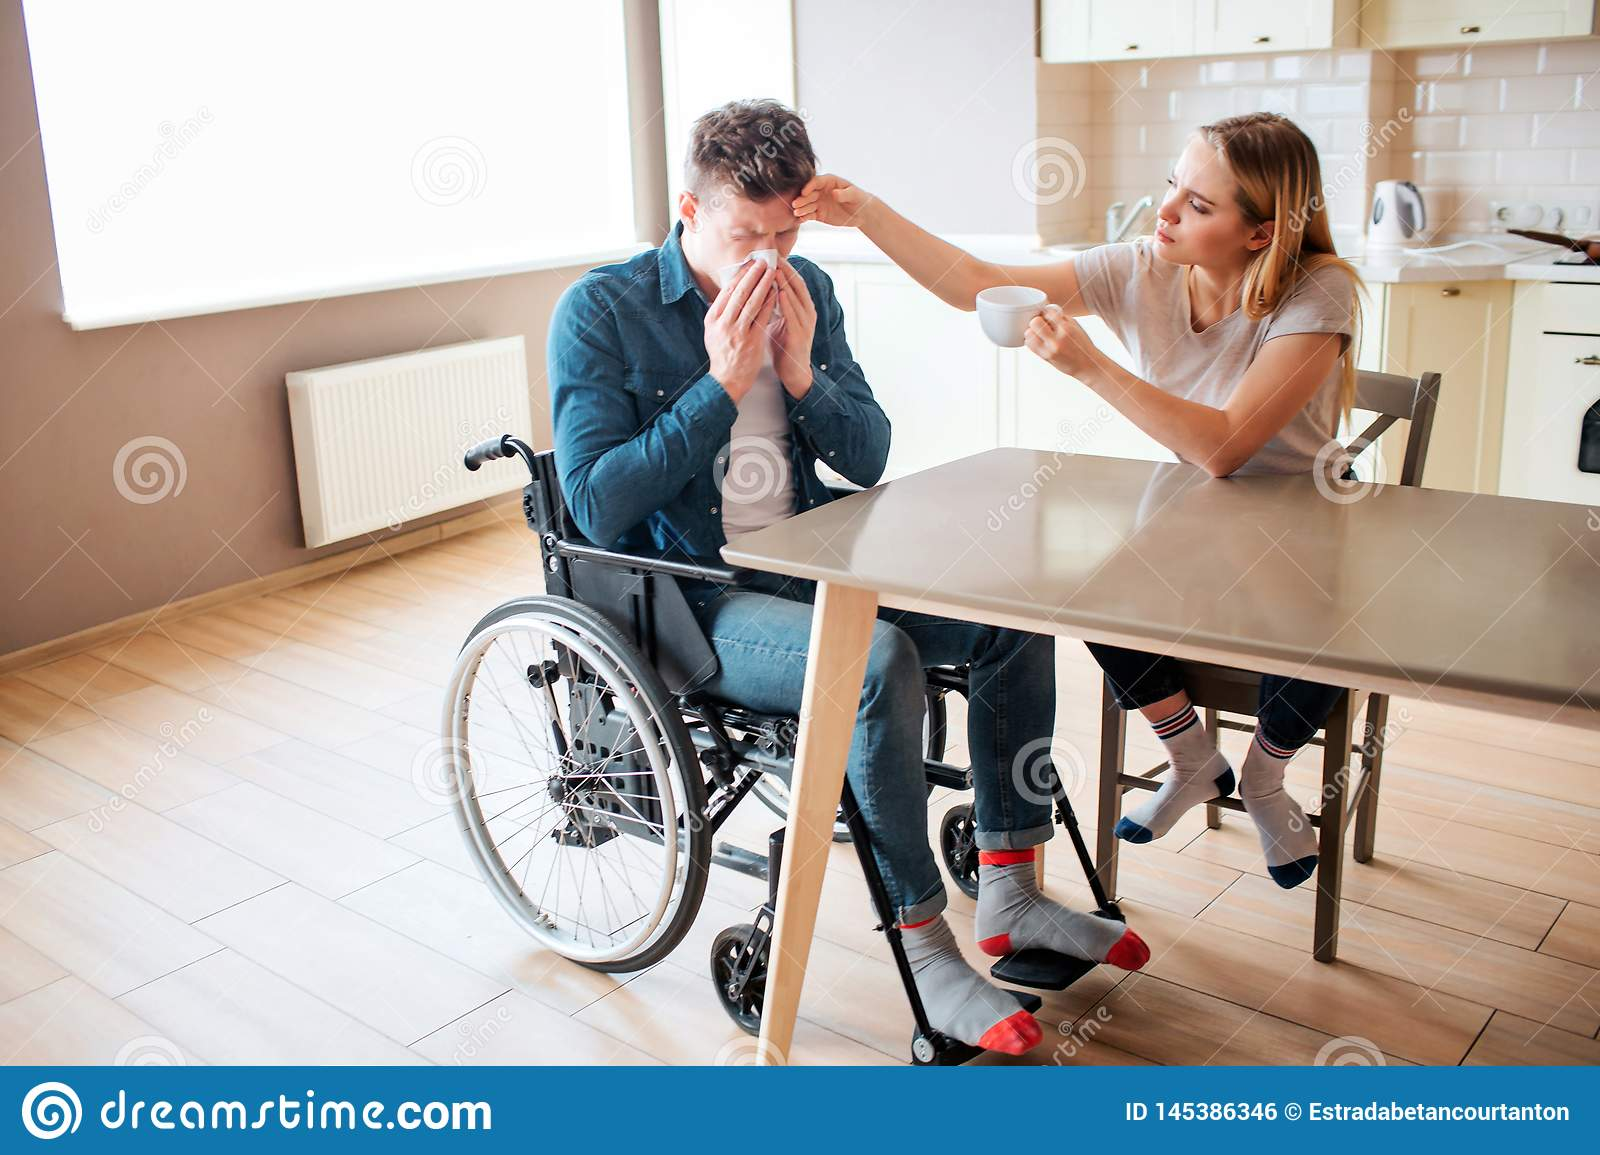 Sick young man with special needs and disability sneezing. Sick and ill guy. Young woman sit beside in kitchen and take